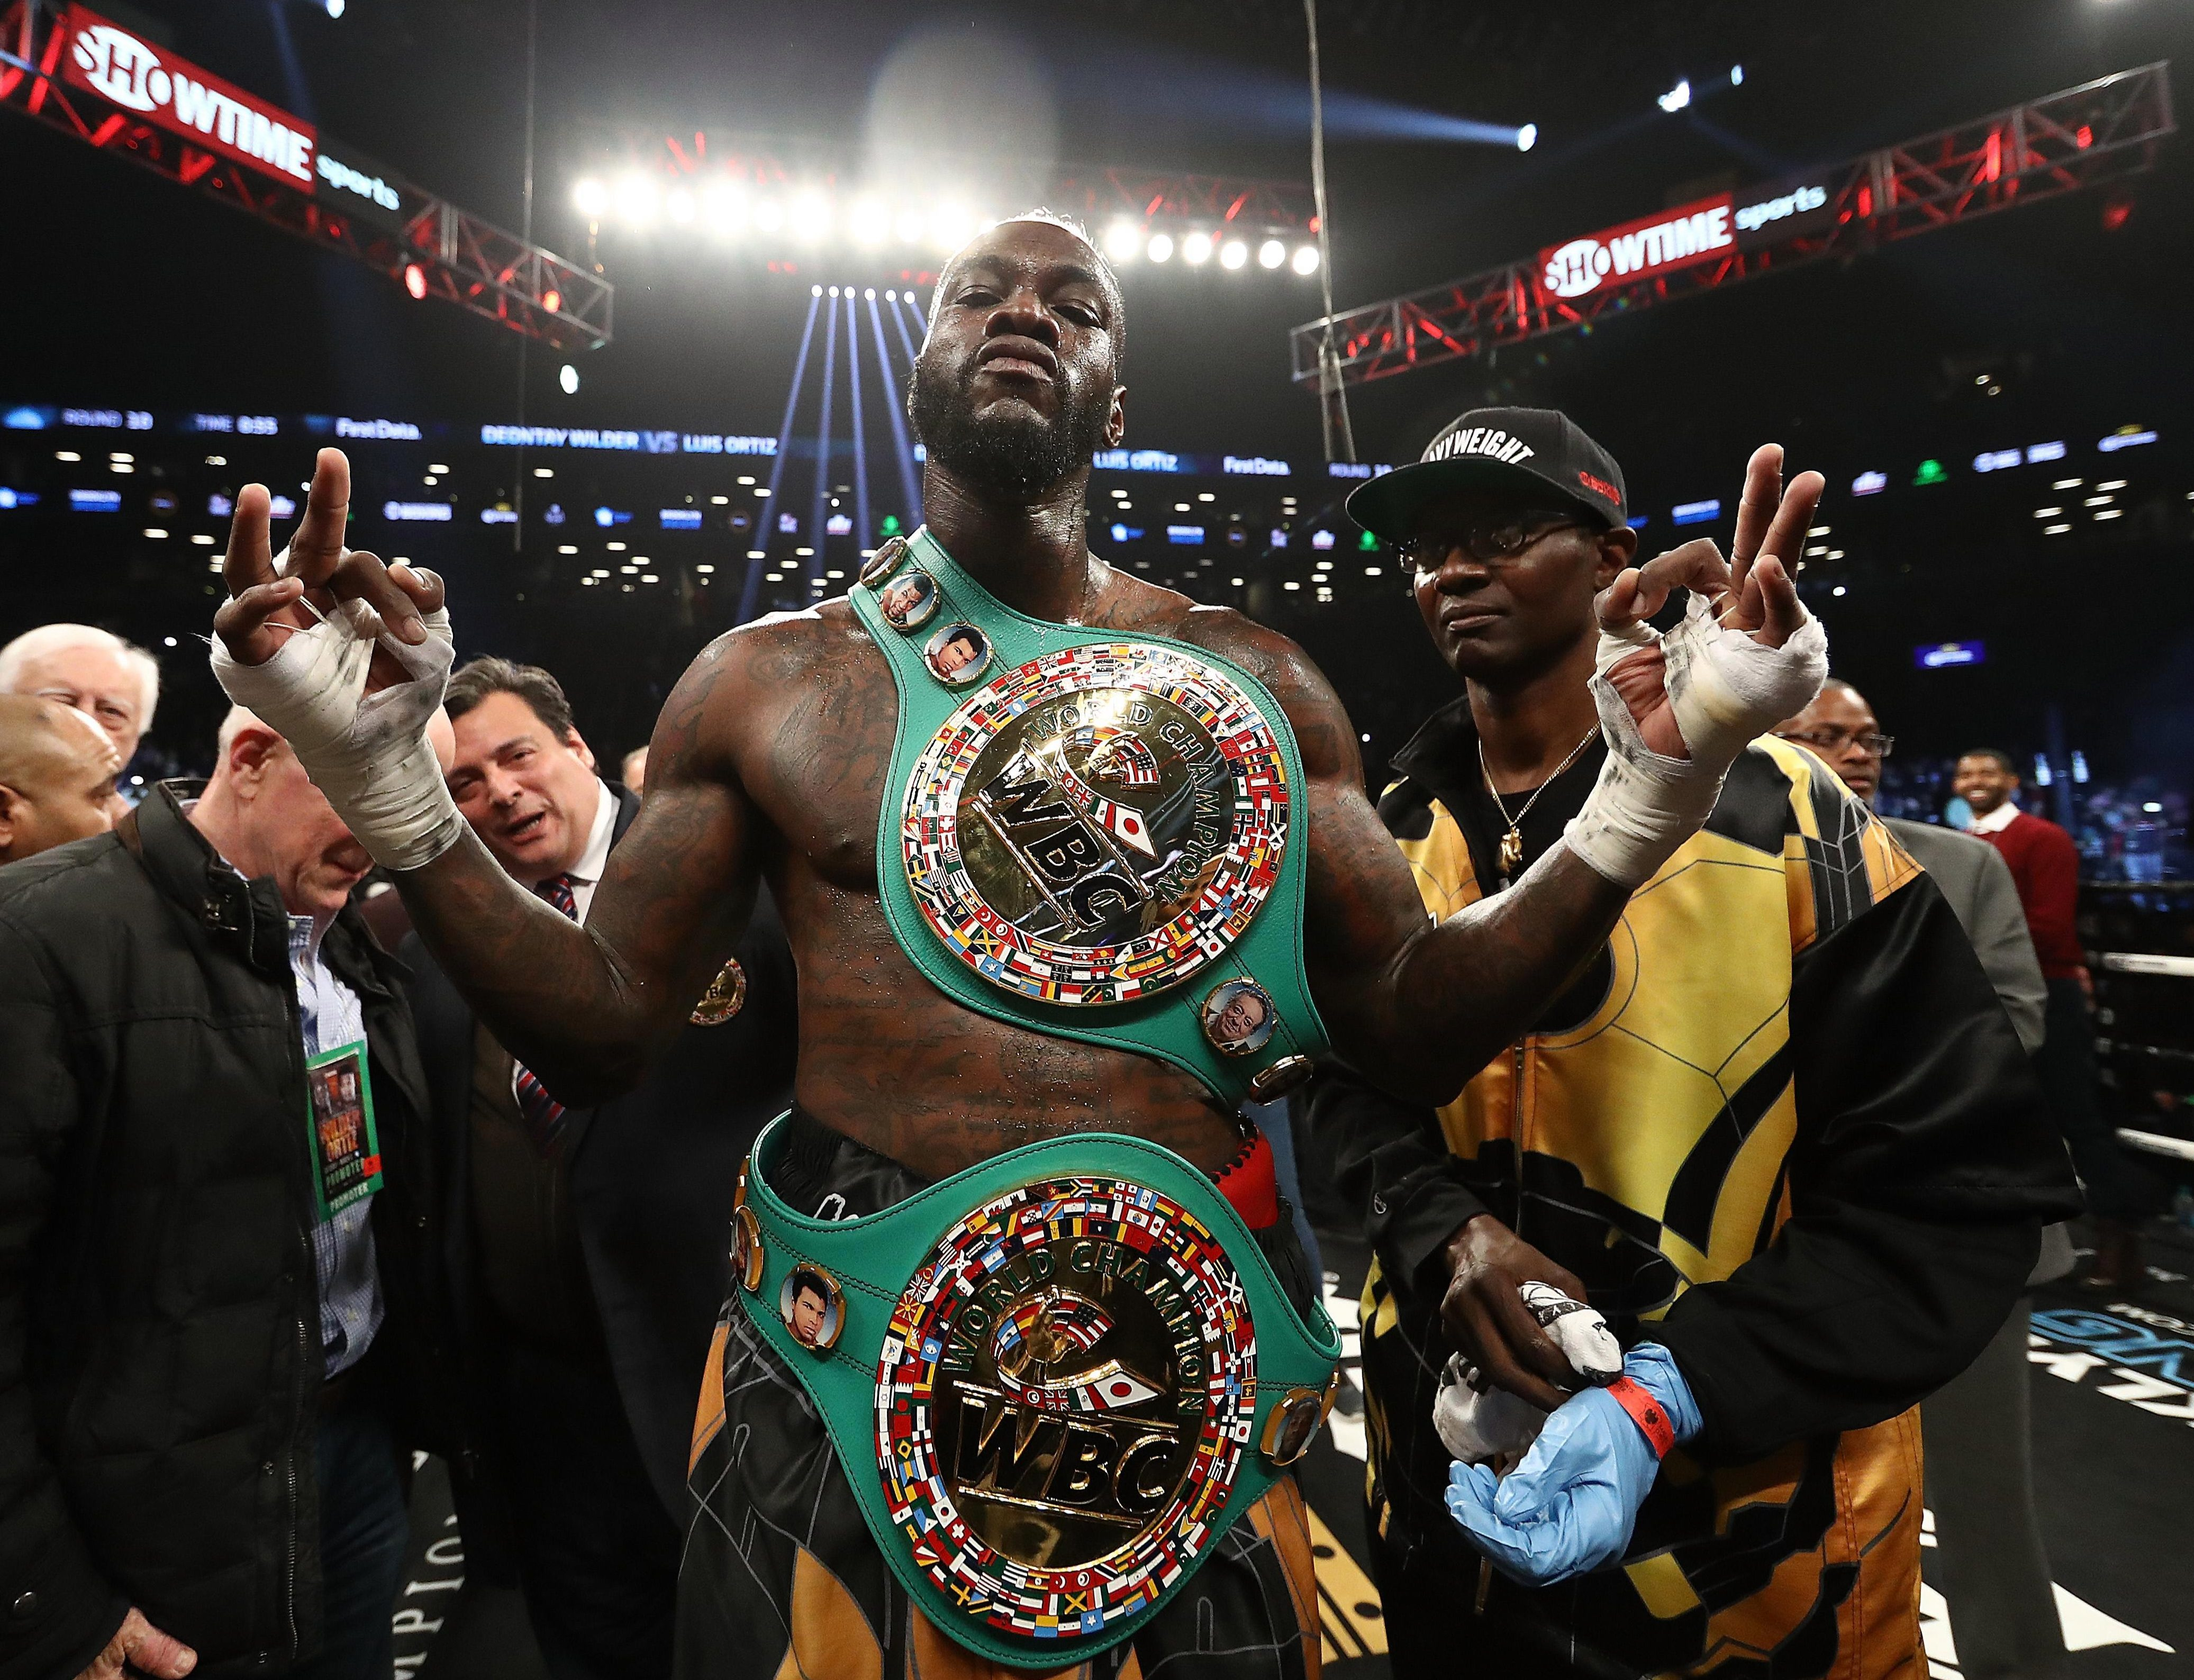 It has been reported that WBC heavyweight champion Wilder will face Fury in Las Vegas